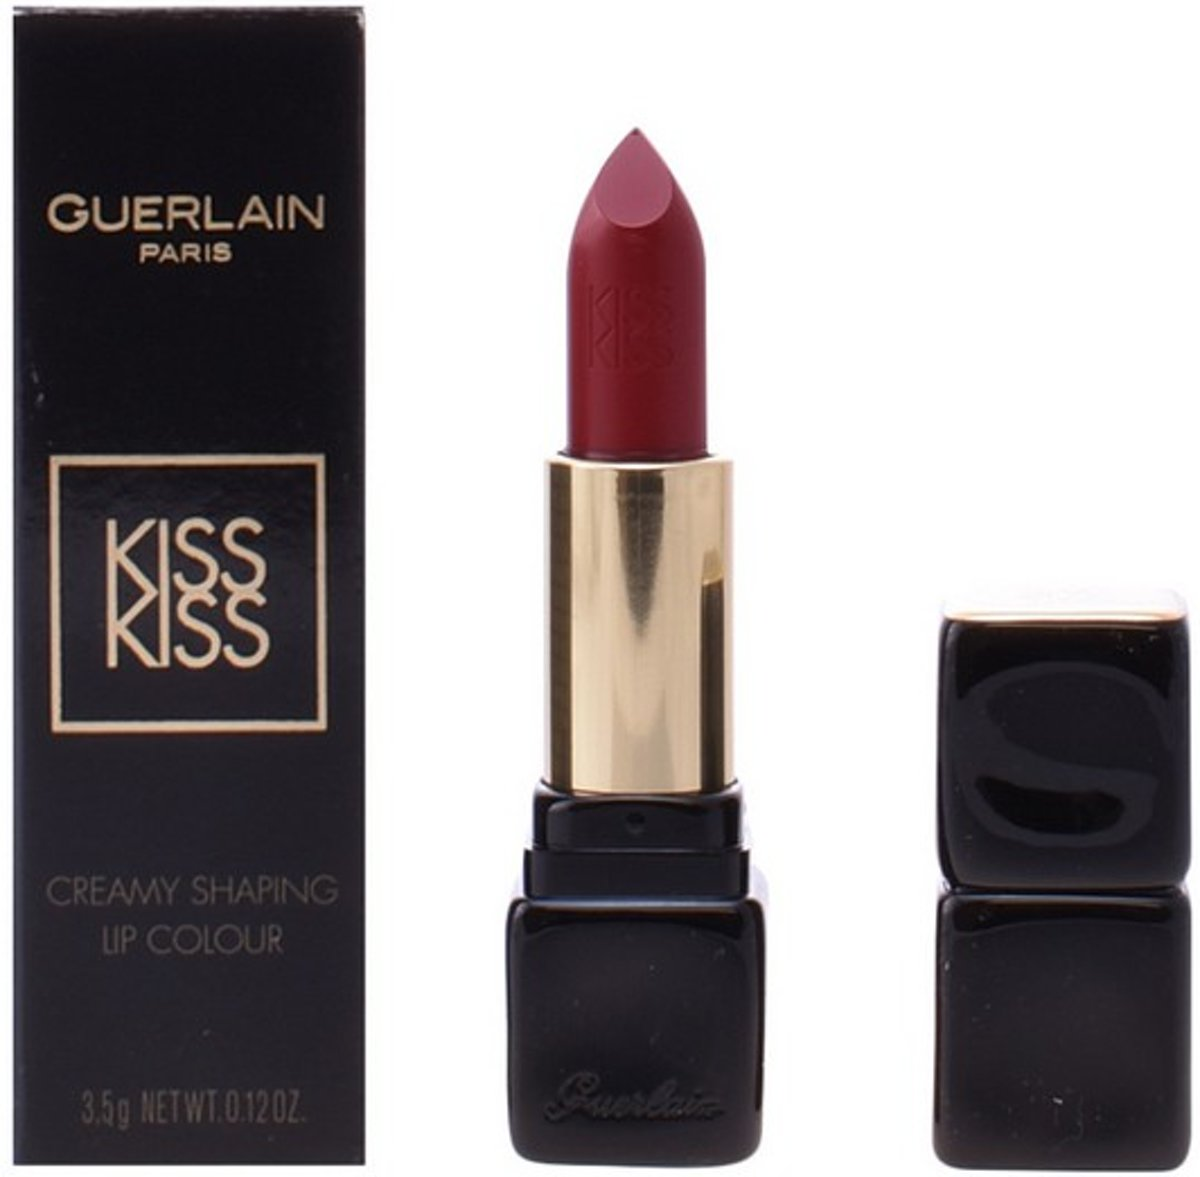 Guerlain Kiss Kiss Creamy Shaping Lip Colour 3.5 gr